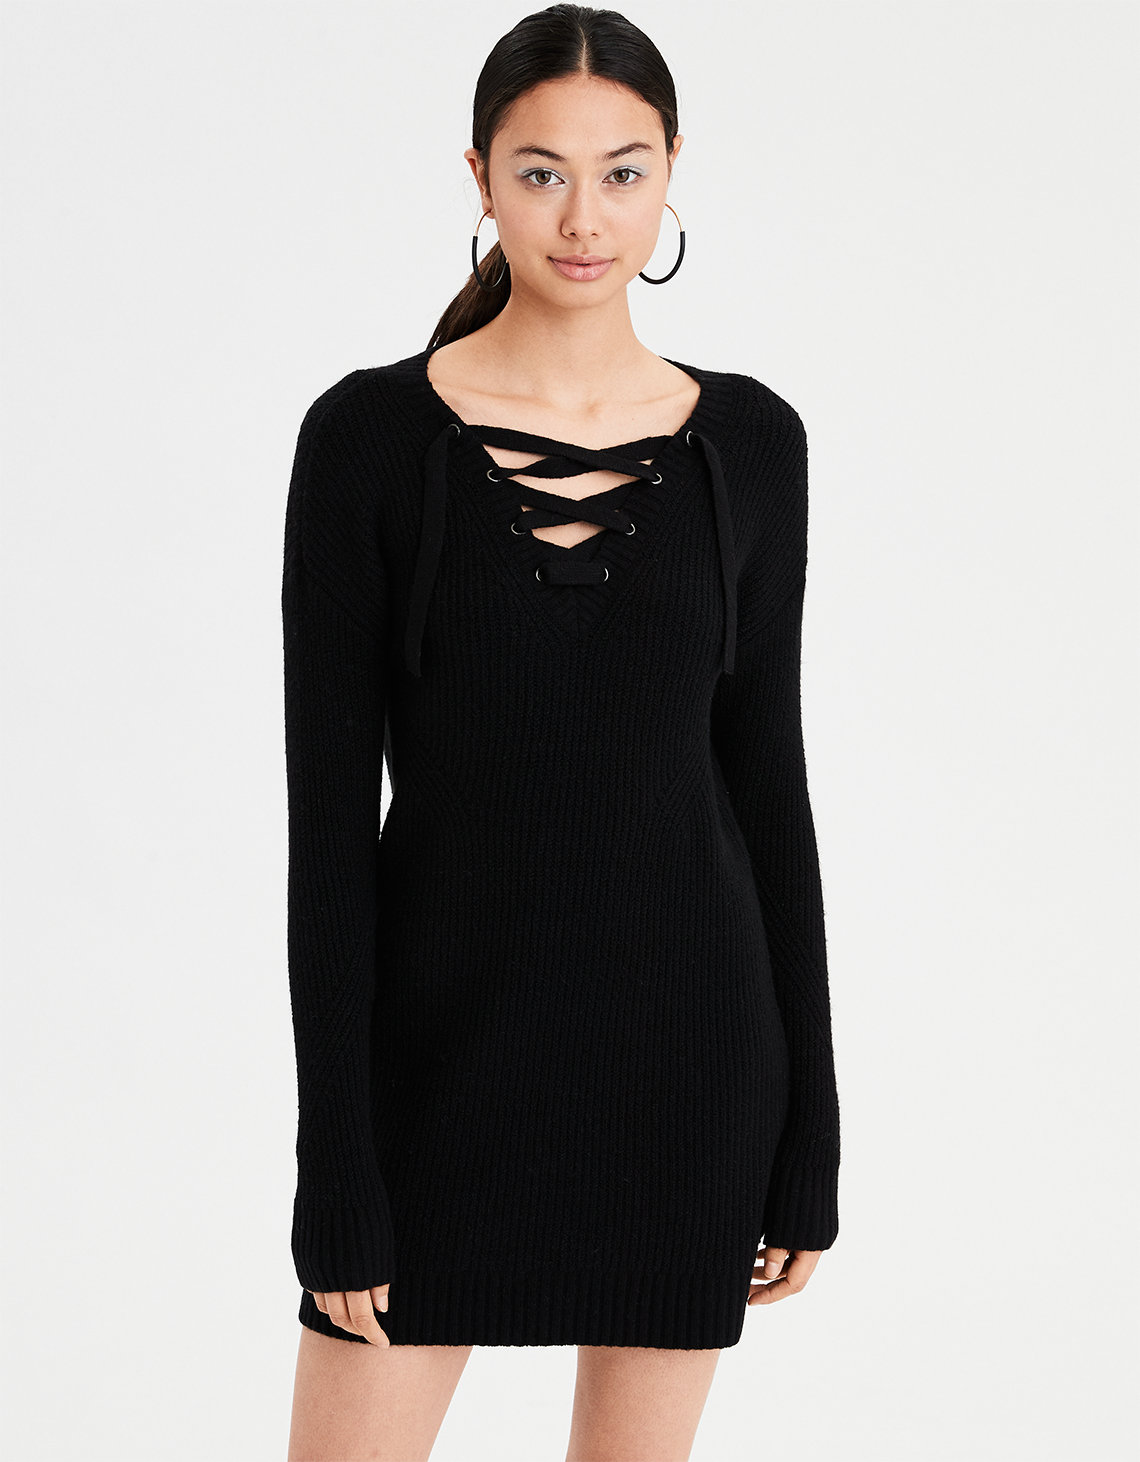 e54dd2eadf AE Lace-Up Sweater Dress. Placeholder image. Product Image